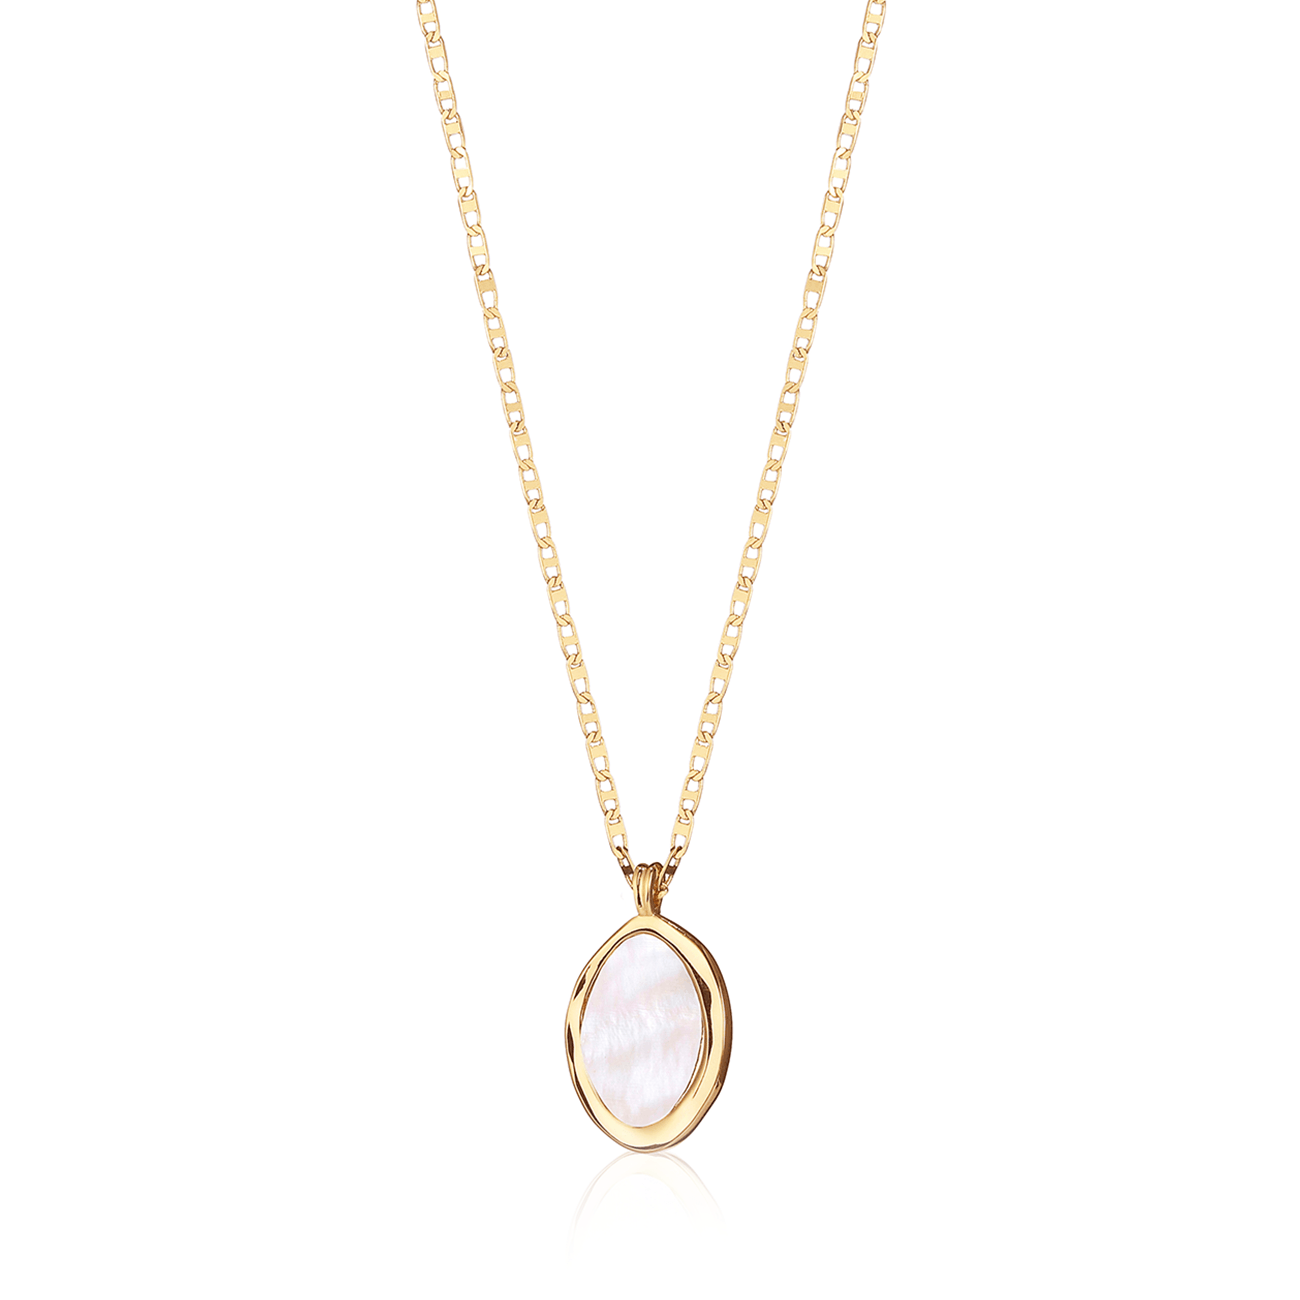 JENNY BIRD - ISLA PENDANT IN HIGH POLISH GOLD